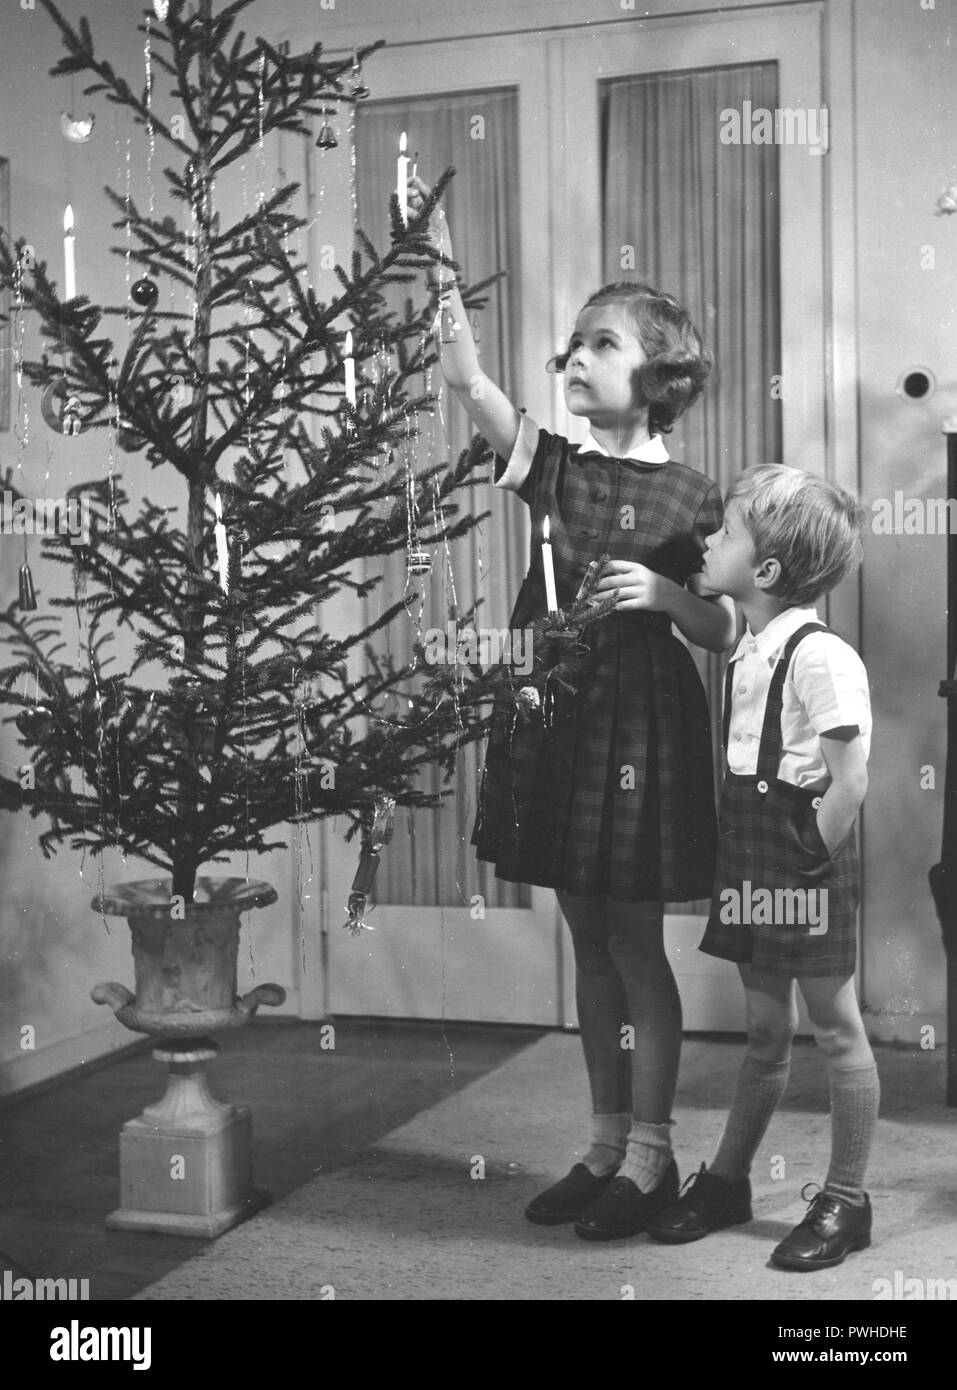 Christmas in the 1950s. A girl and a boy is lighting the candles in the christmas tree. They are nicely dressed for christmas. Sweden 1952 - Stock Image